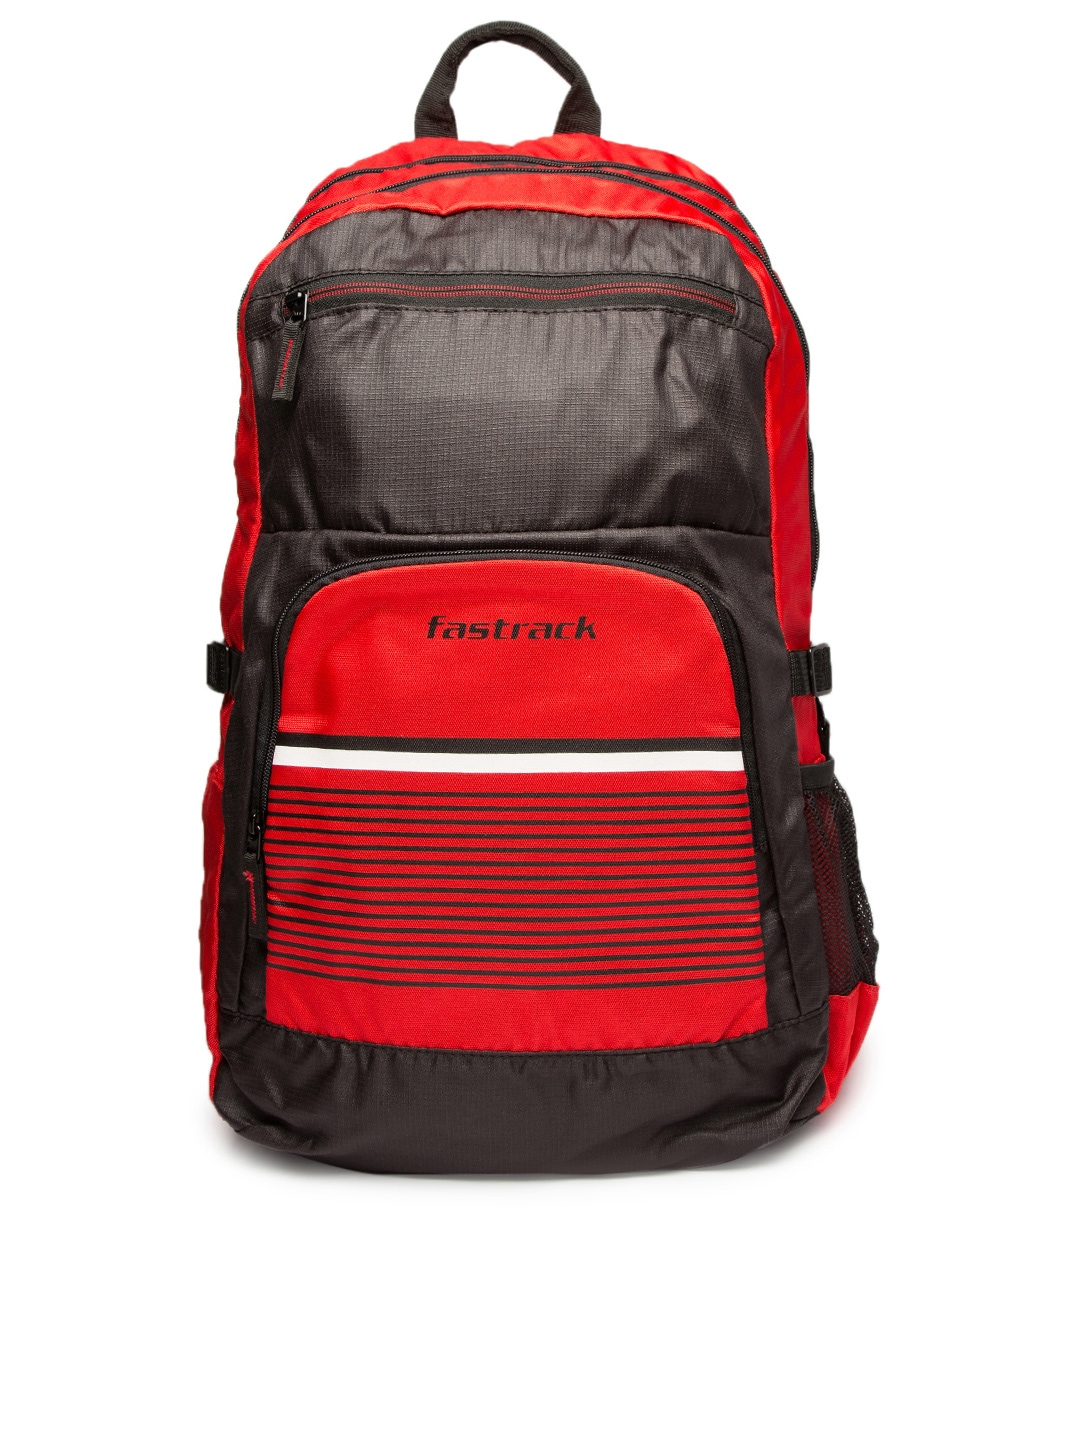 Boys Bags - Buy Bags for Boys Online in India  d2dbd856969c2